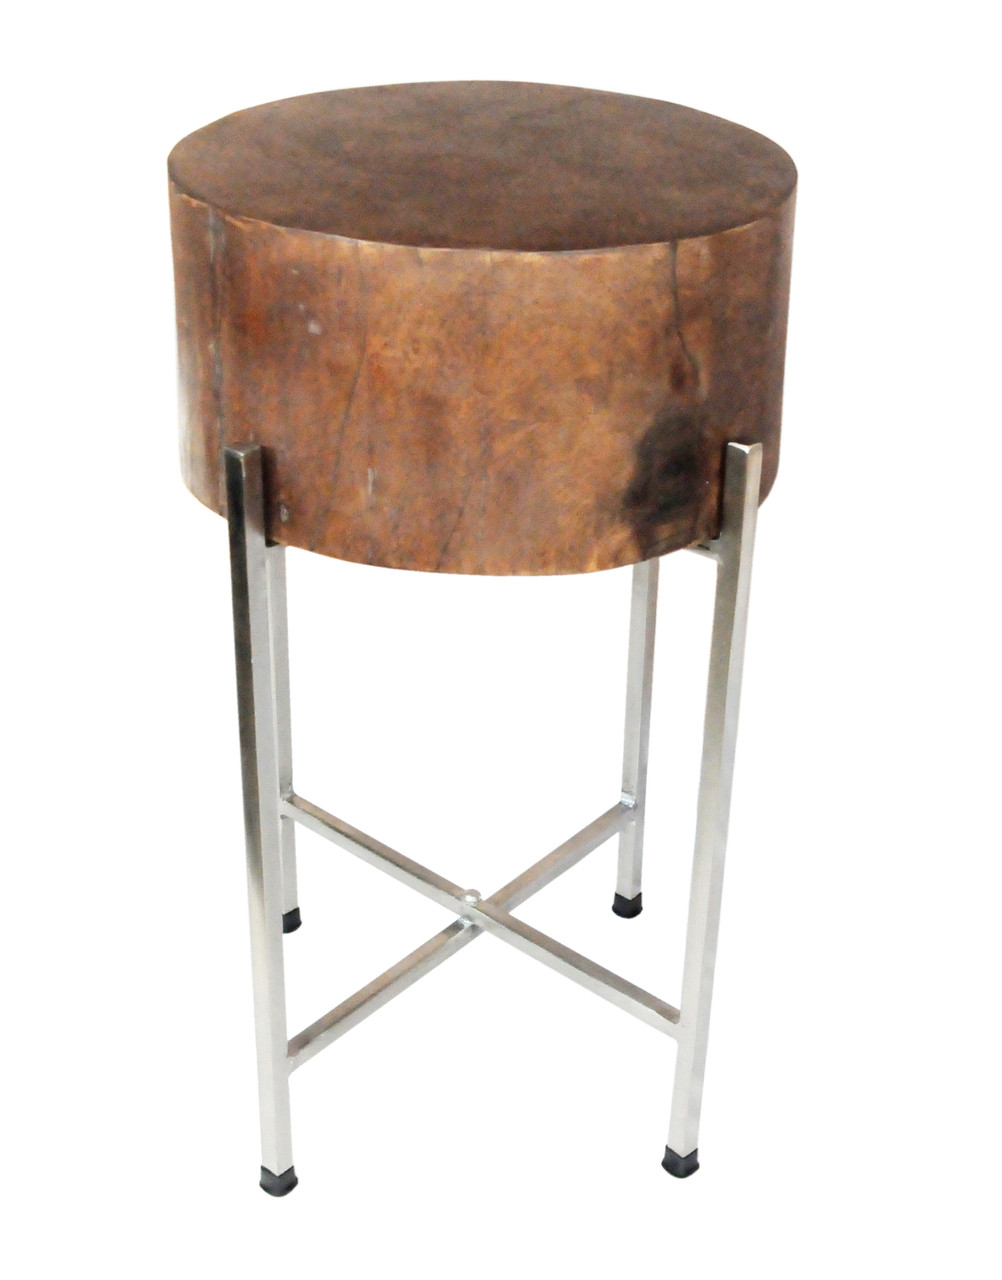 - Round Wood Block Accent Table